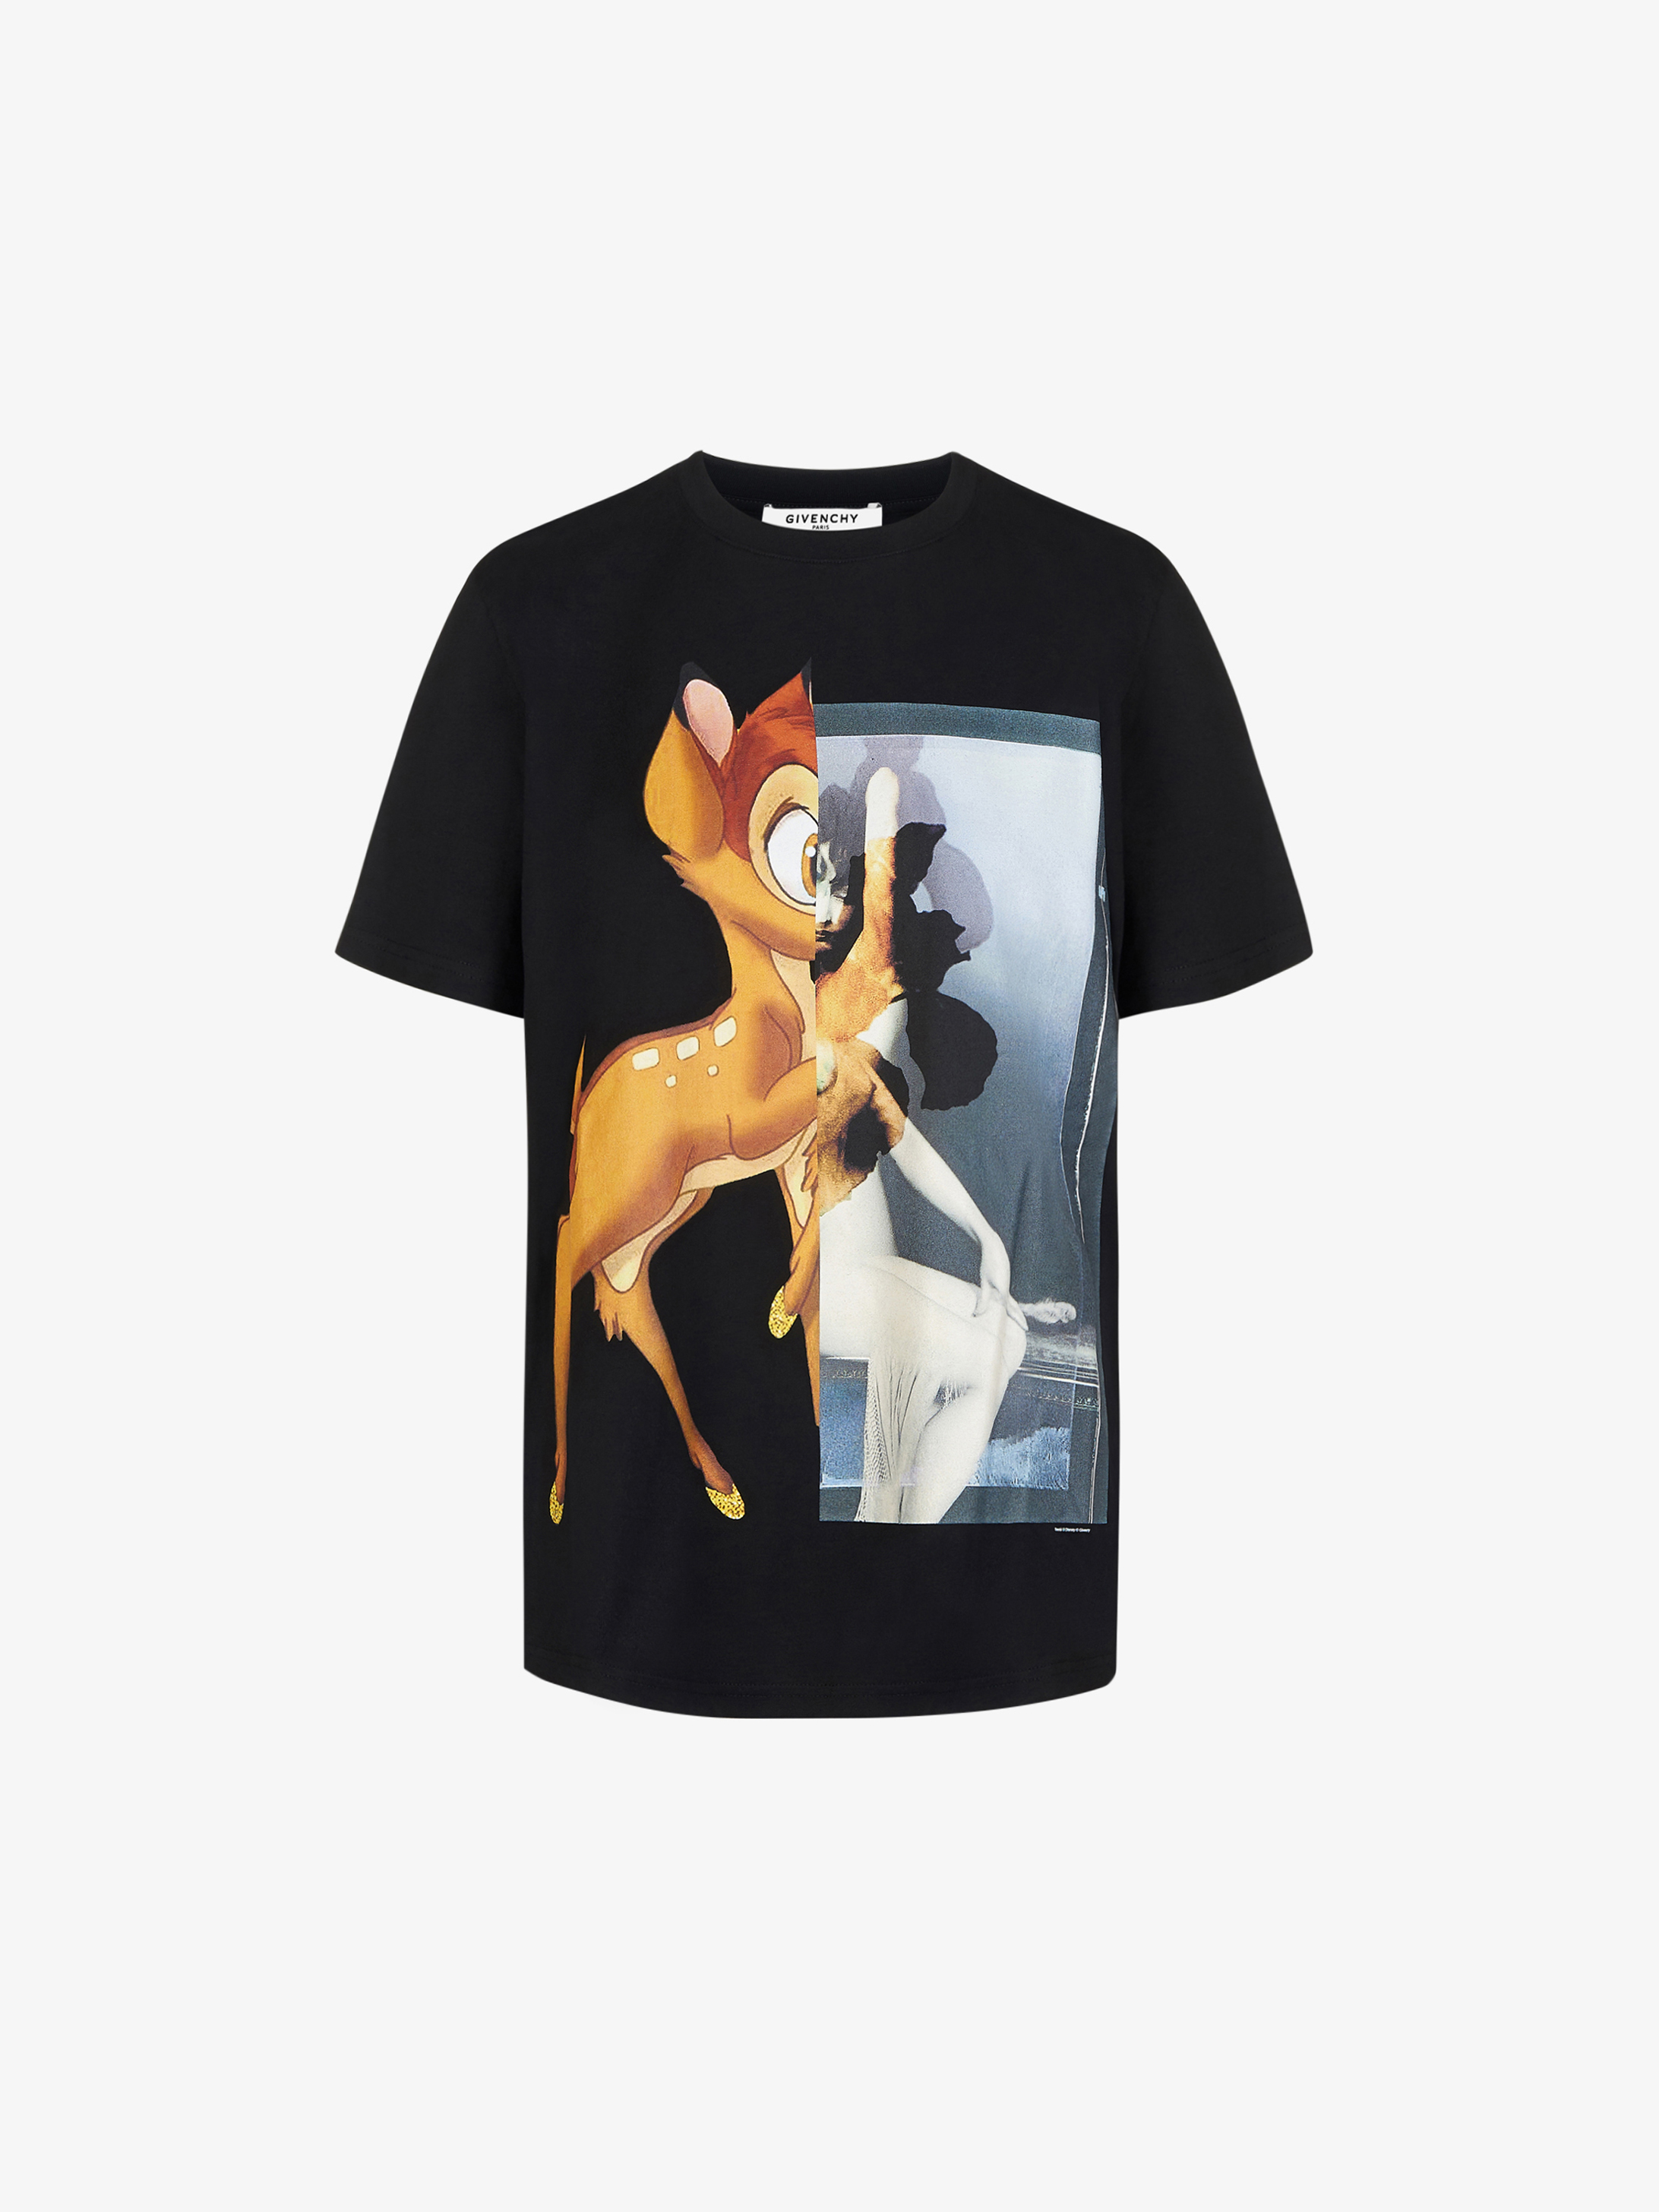 Buy t shirt givenchy 52 off Givenchy t shirt price